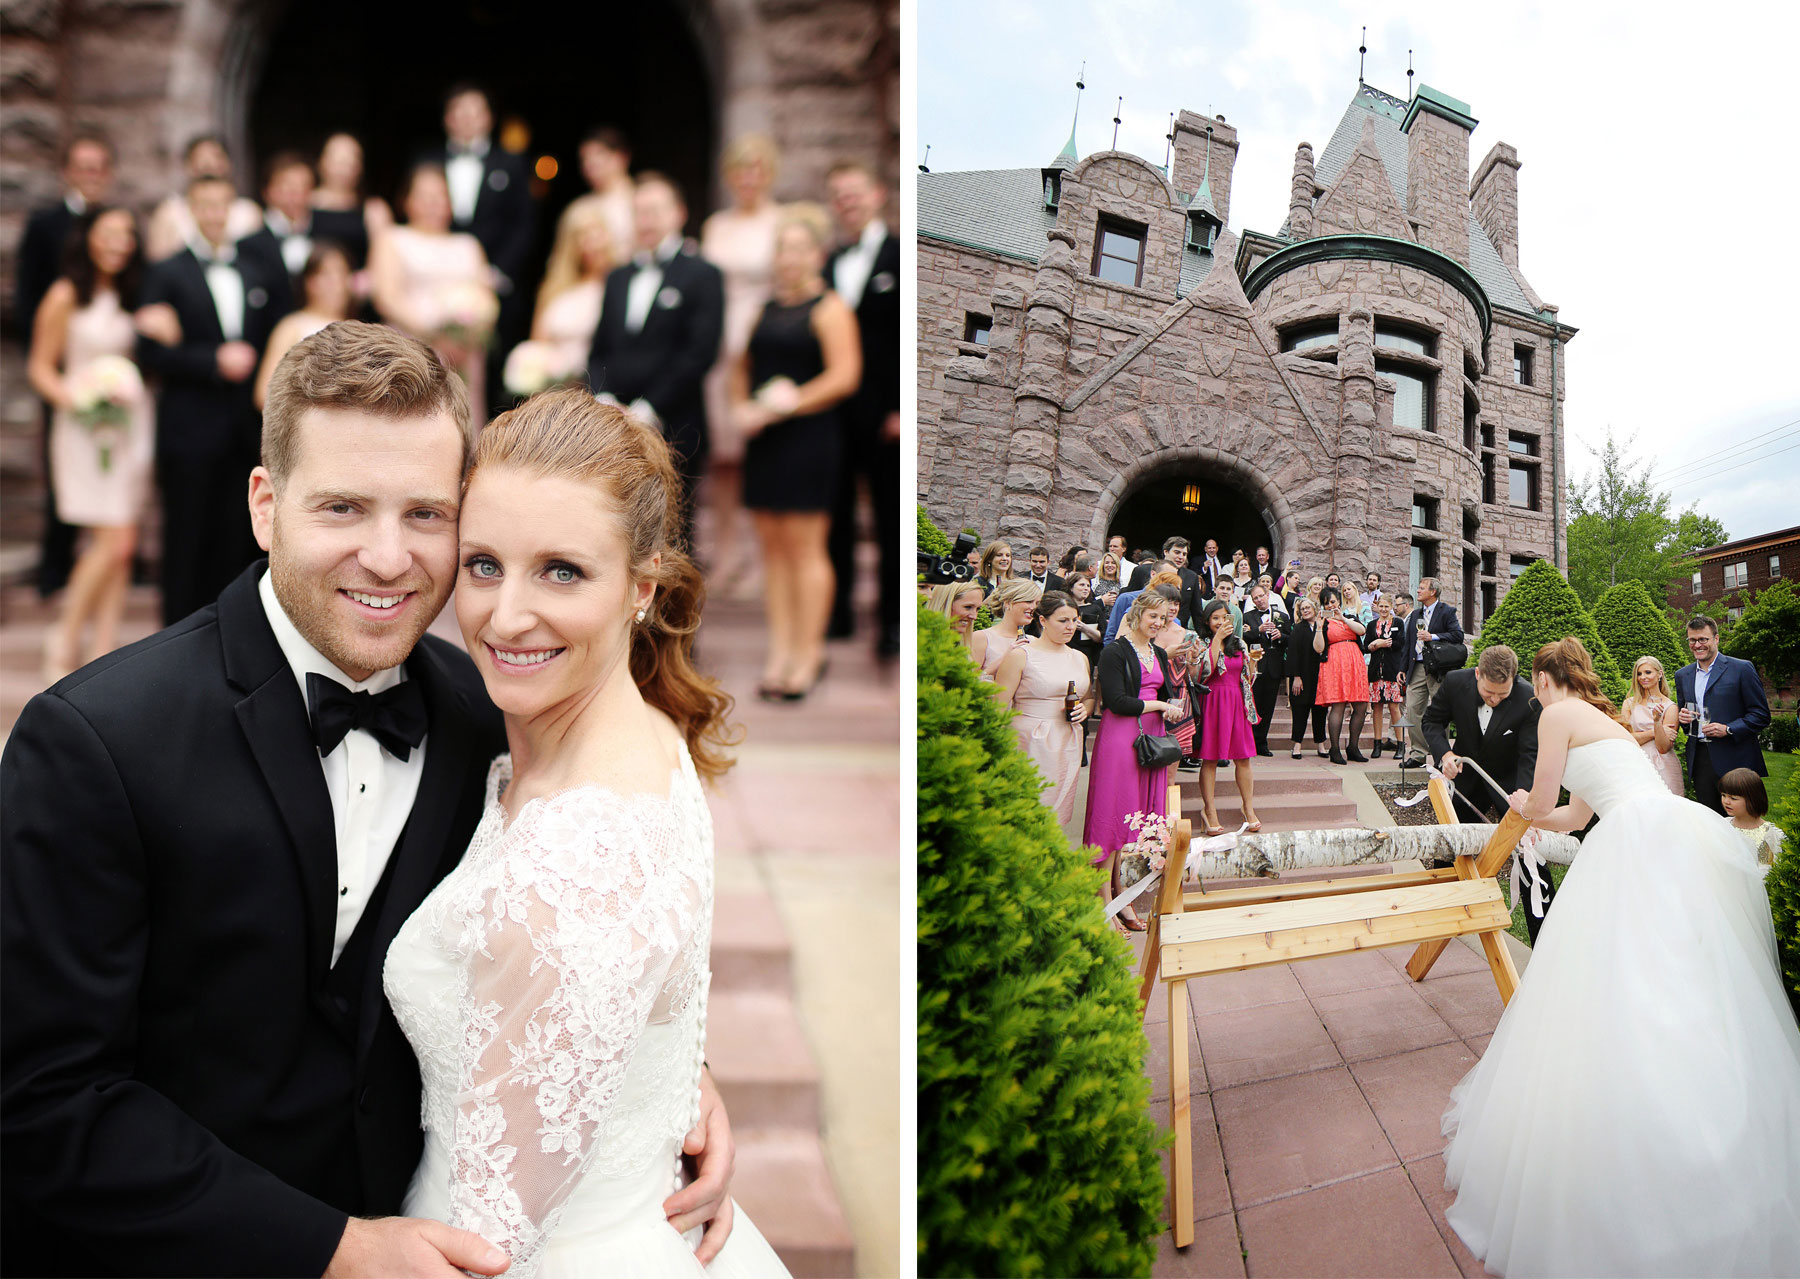 14-Minneapolis-Minnesota-Wedding-Photography-by-Vick-Photography--Van-Dusen-Mansion-Outdoor.jpg